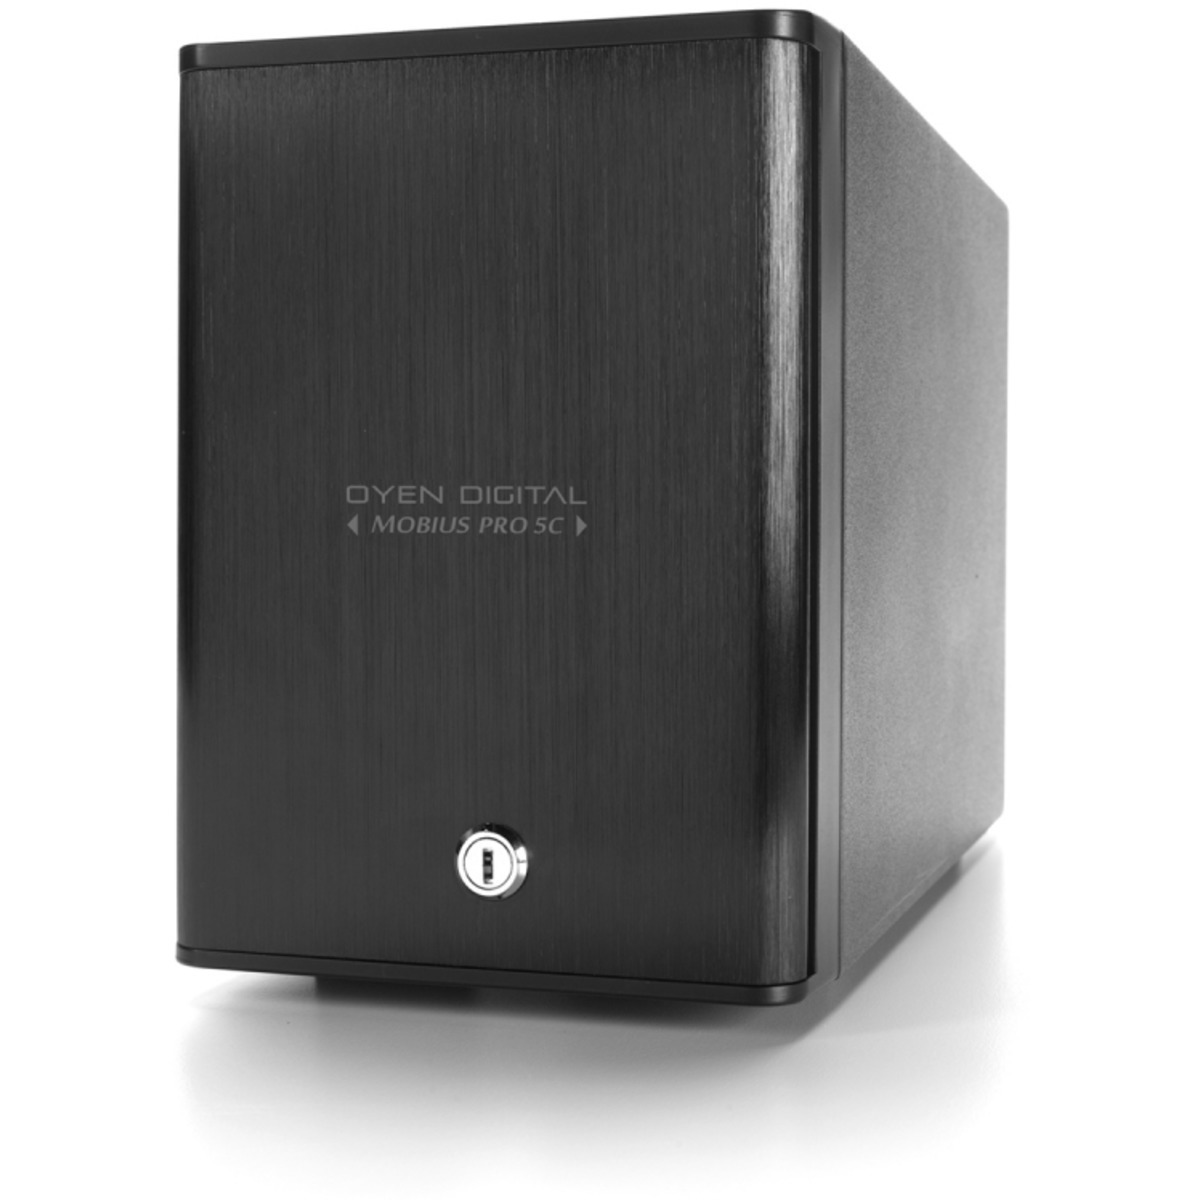 buy $3168 OYEN Mobius Pro 5C 5-Bay USB-C SoftRAID 70tb Desktop DAS - Direct Attached Storage Device 5x14000gb Western Digital Red Pro WD141KFGX 3.5 7200rpm SATA 6Gb/s HDD NAS Class Drives Installed - Burn-In Tested - nas headquarters buy network attached storage server device das new raid-5 free shipping usa holiday new year clearance sale Mobius Pro 5C 5-Bay USB-C SoftRAID